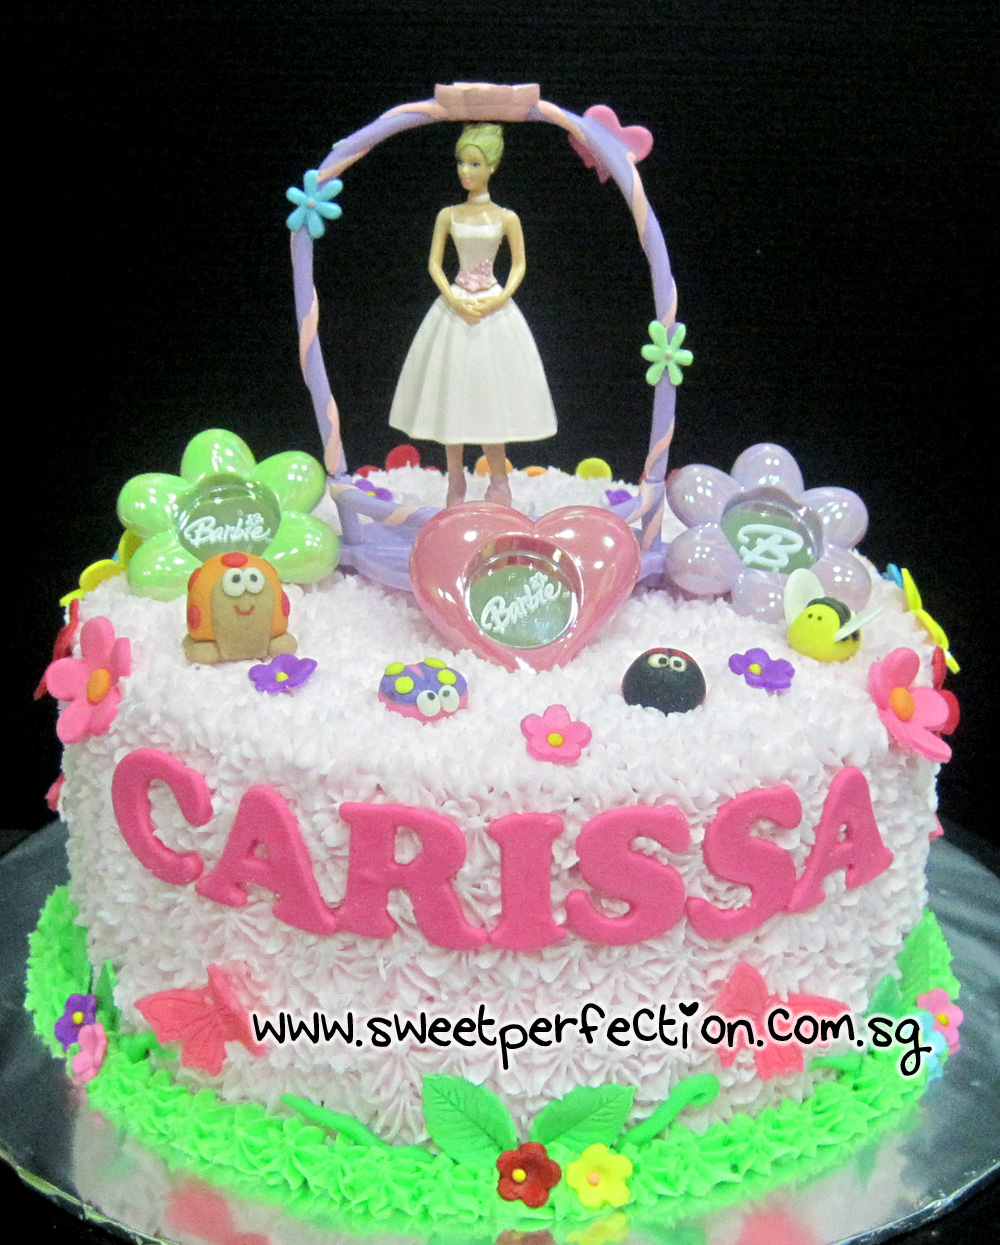 happy birthday carissa ; 4